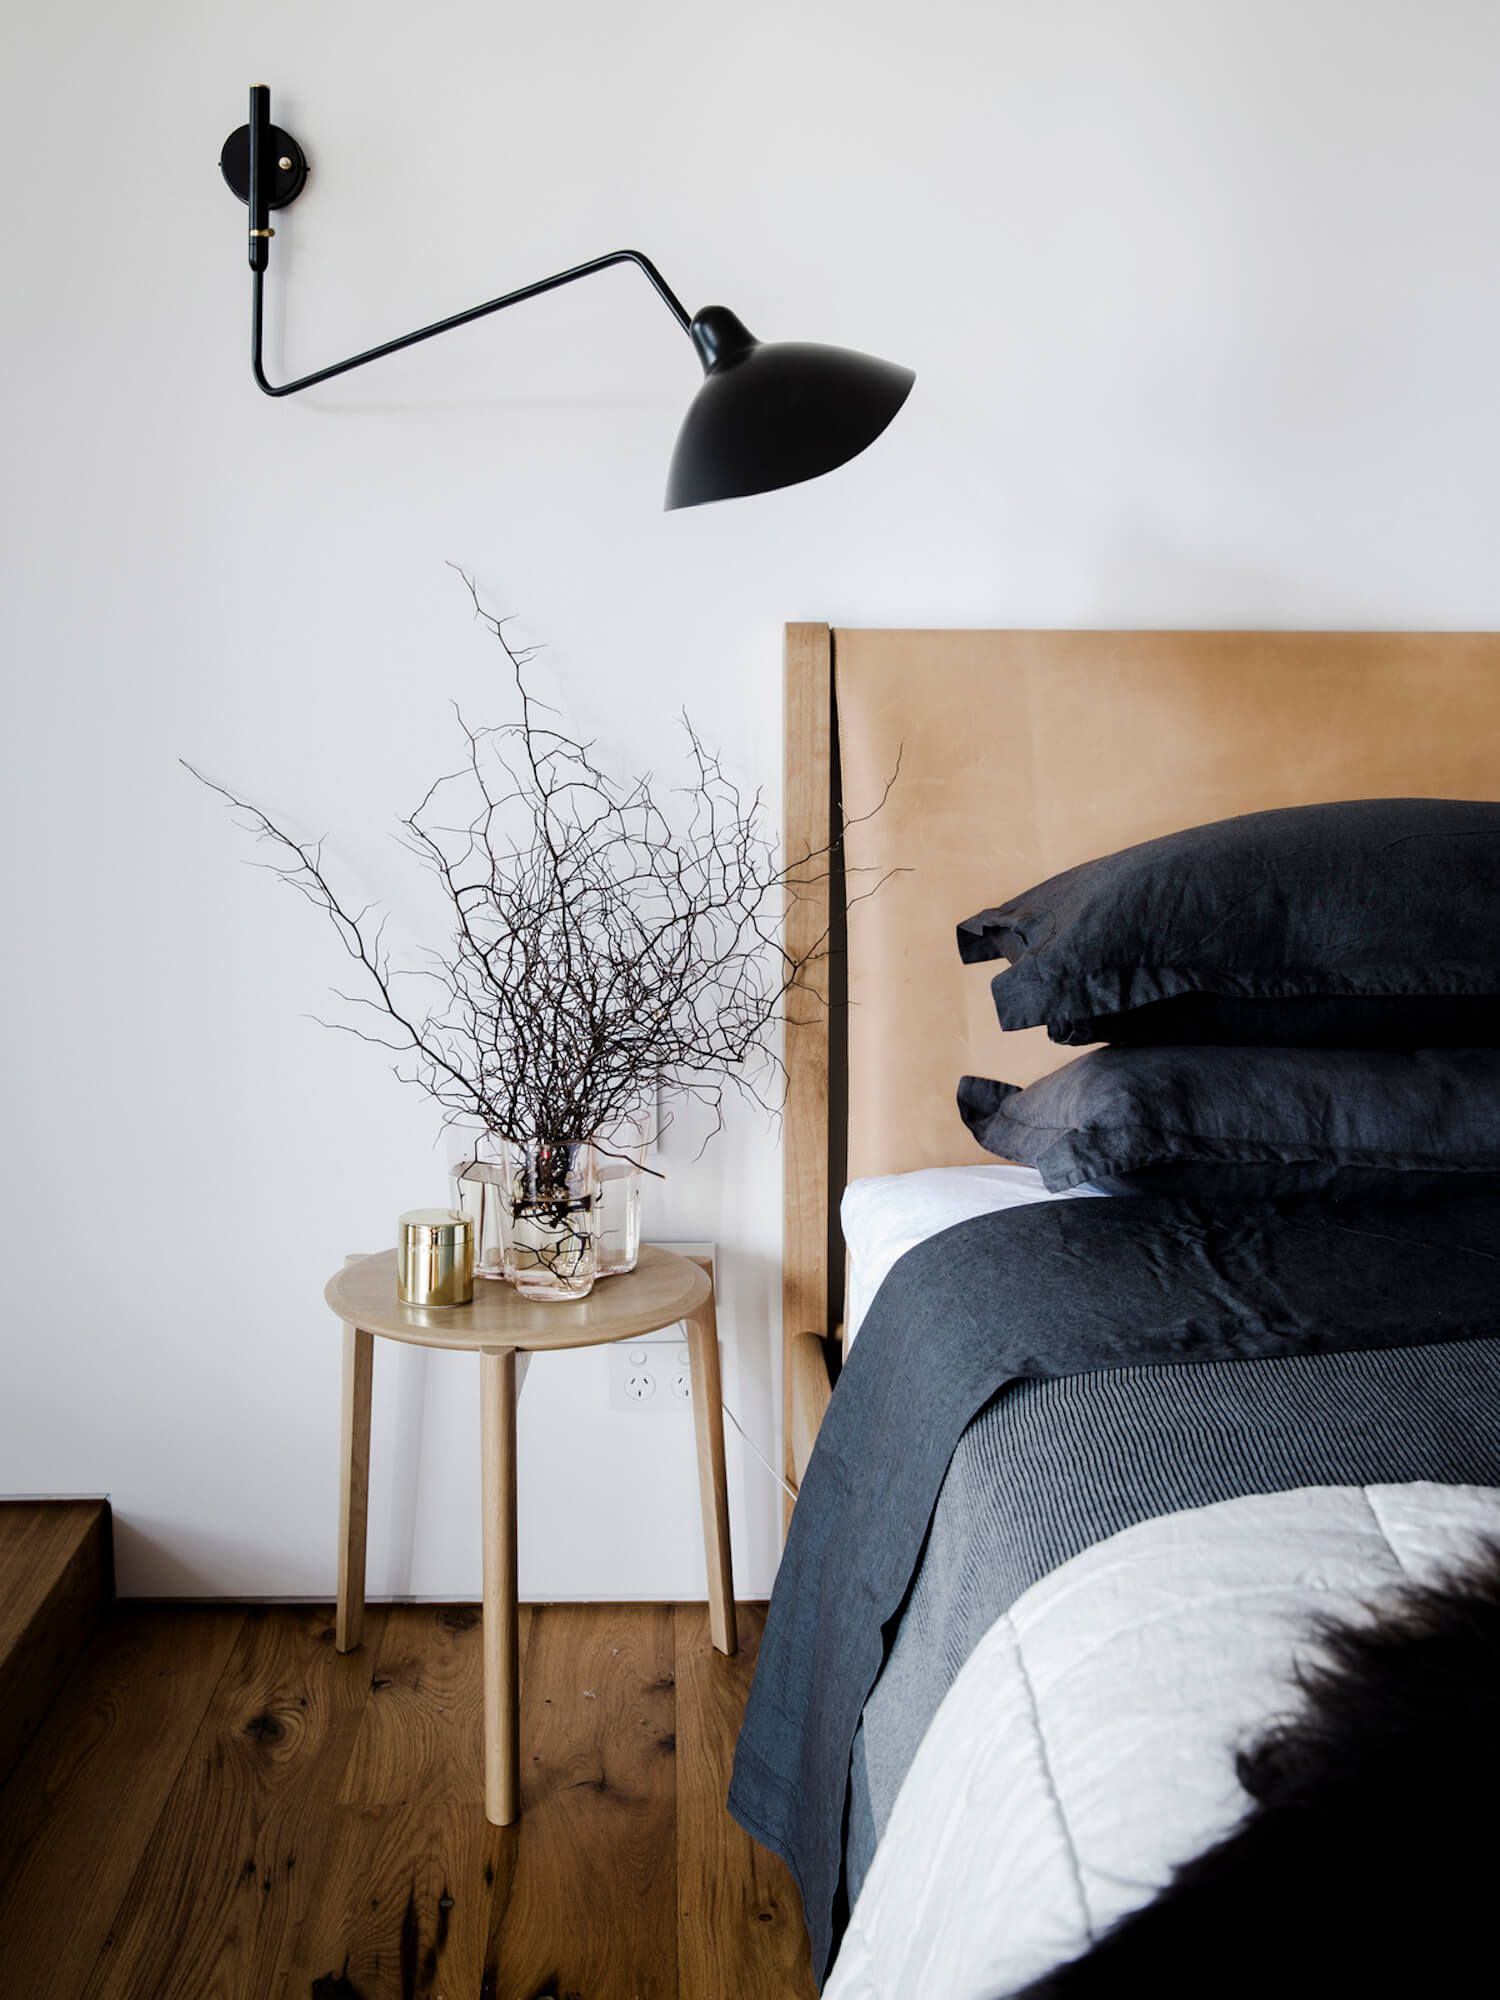 12 Modern Lighting Ideas To Complete Any Room Sconces Living Room Interior Home Decor Bedroom